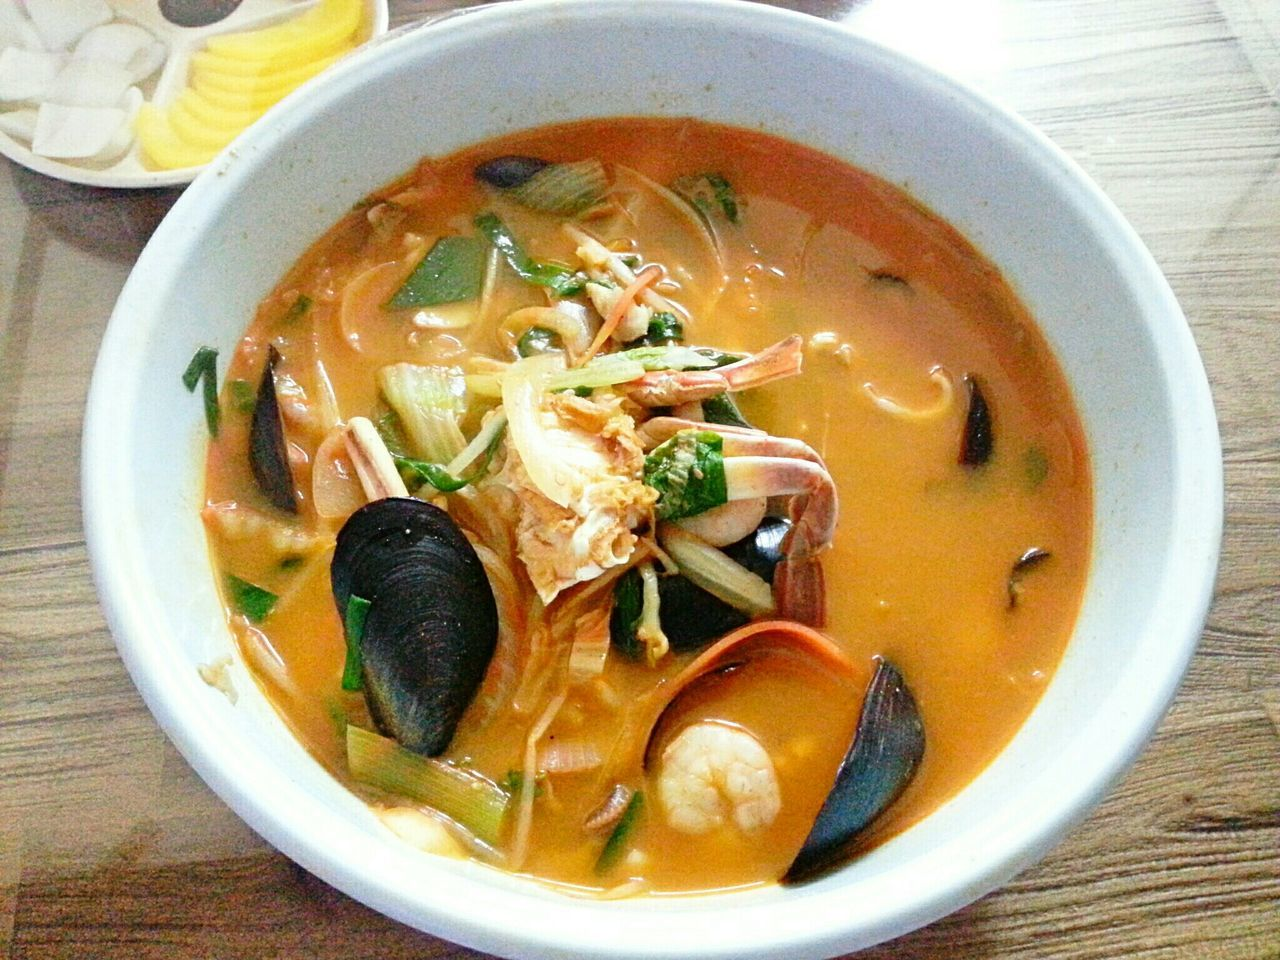 soup, food and drink, bowl, food, table, healthy eating, ready-to-eat, noodle soup, freshness, indoors, noodles, no people, serving size, soup bowl, high angle view, close-up, day, vegetable soup